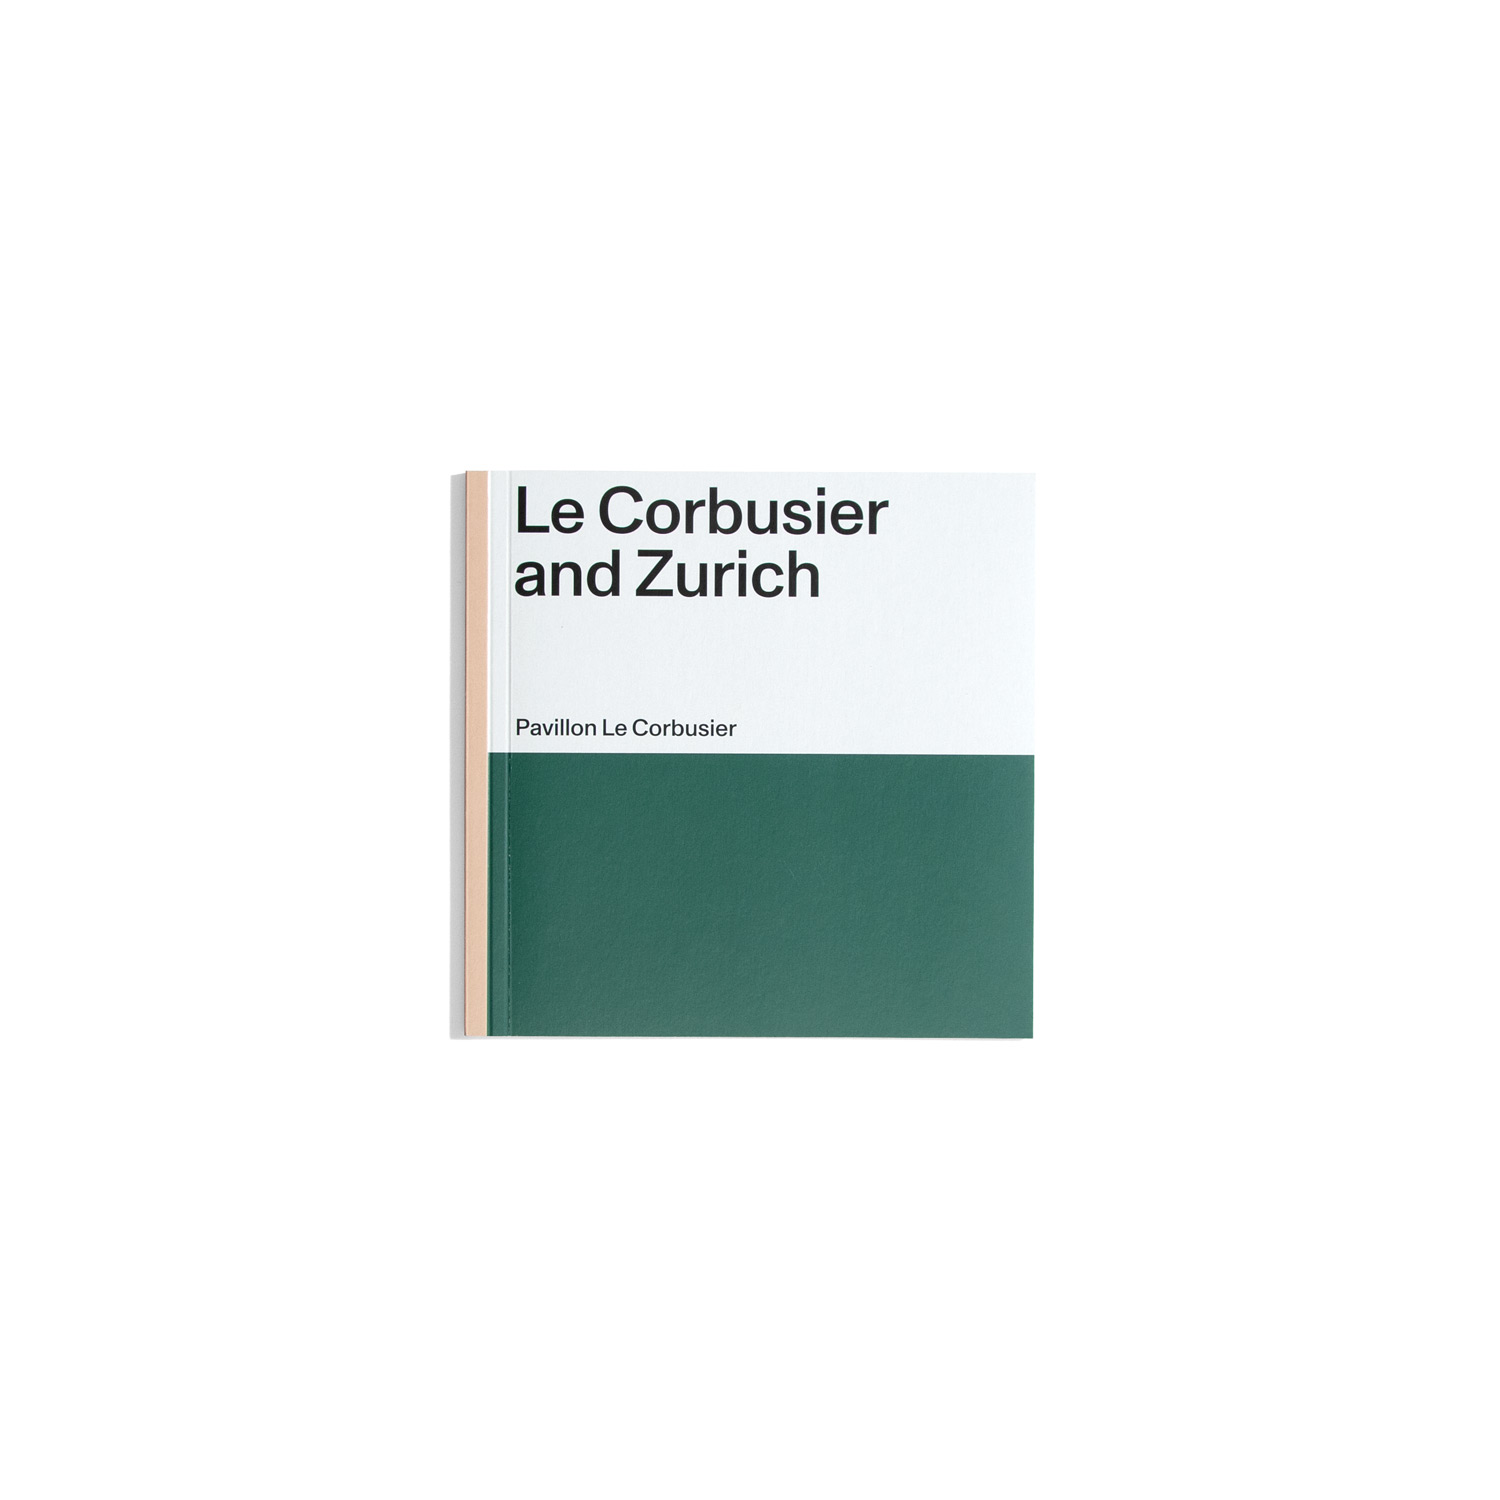 Le Corbusier and Zurich - Pavillon Le Corbusier